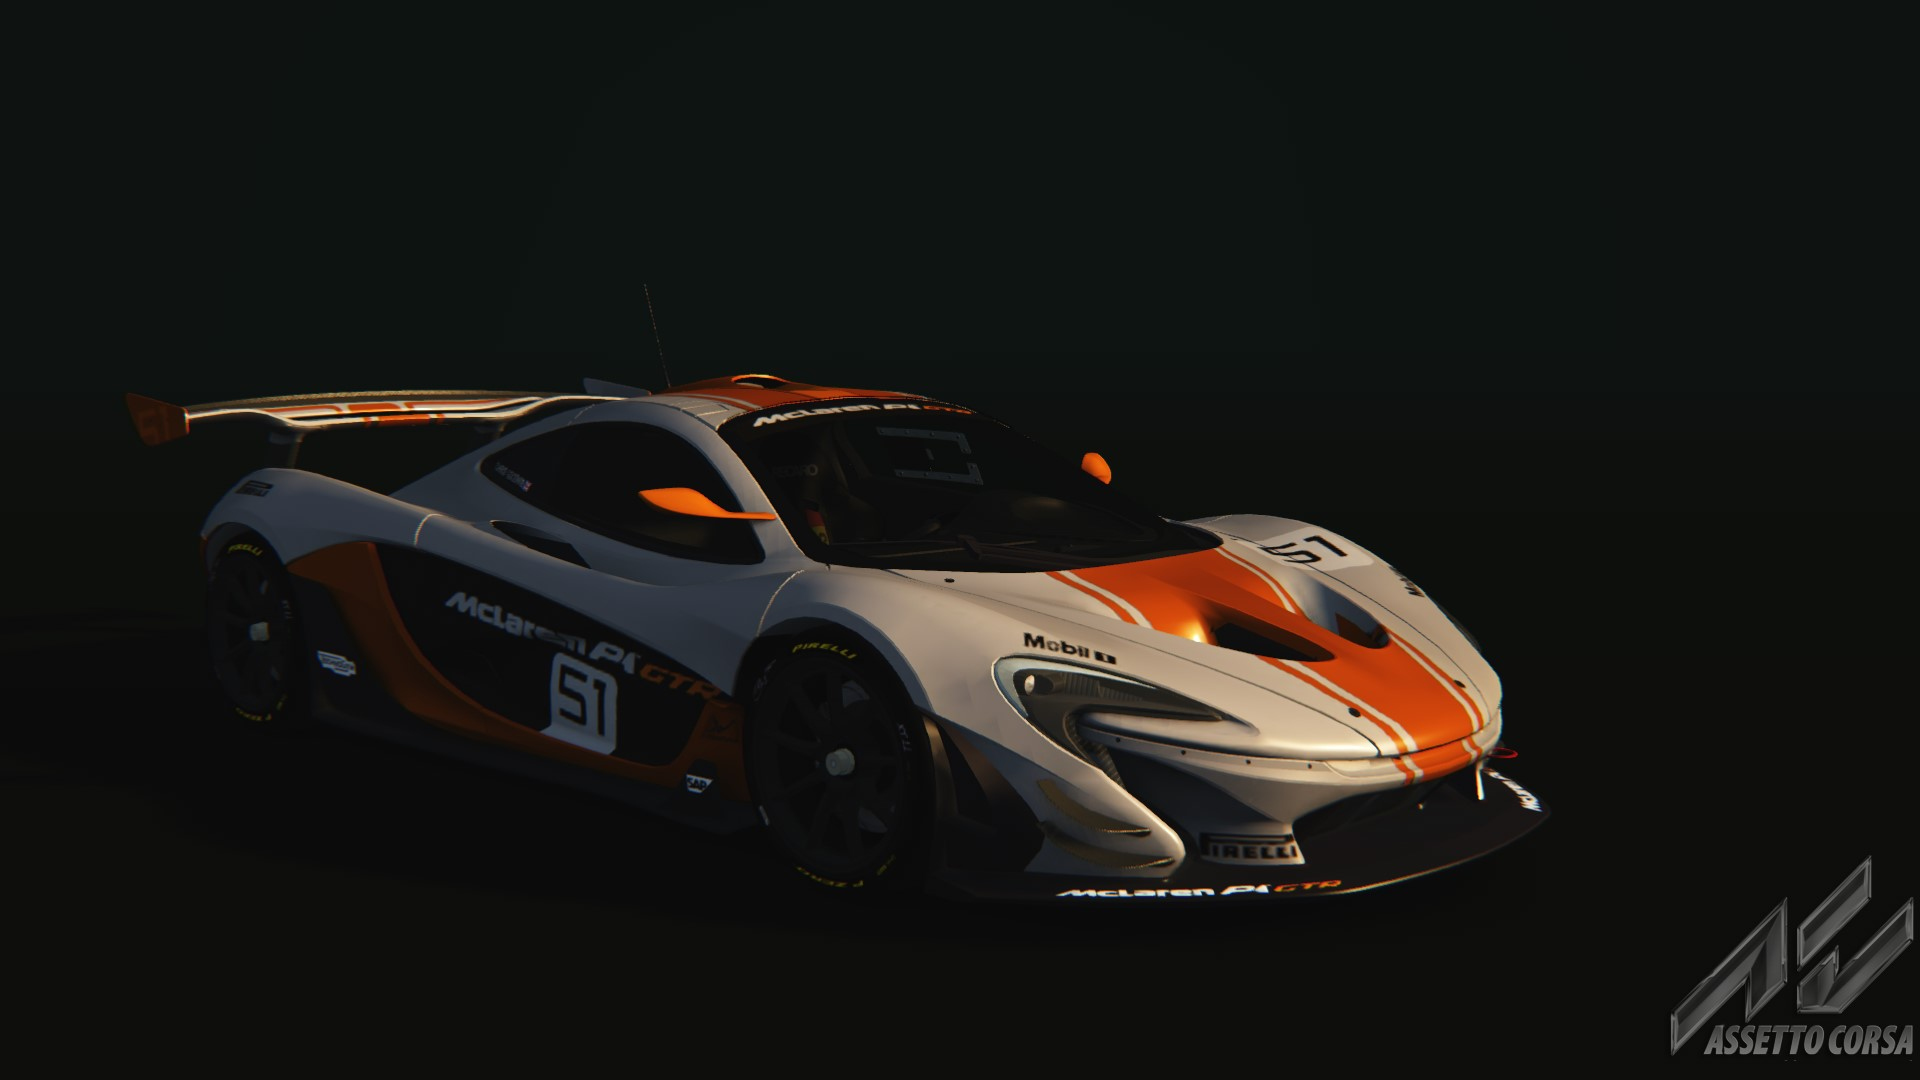 McLaren P1 GTR - McLaren - Car Detail - Assetto Corsa Database